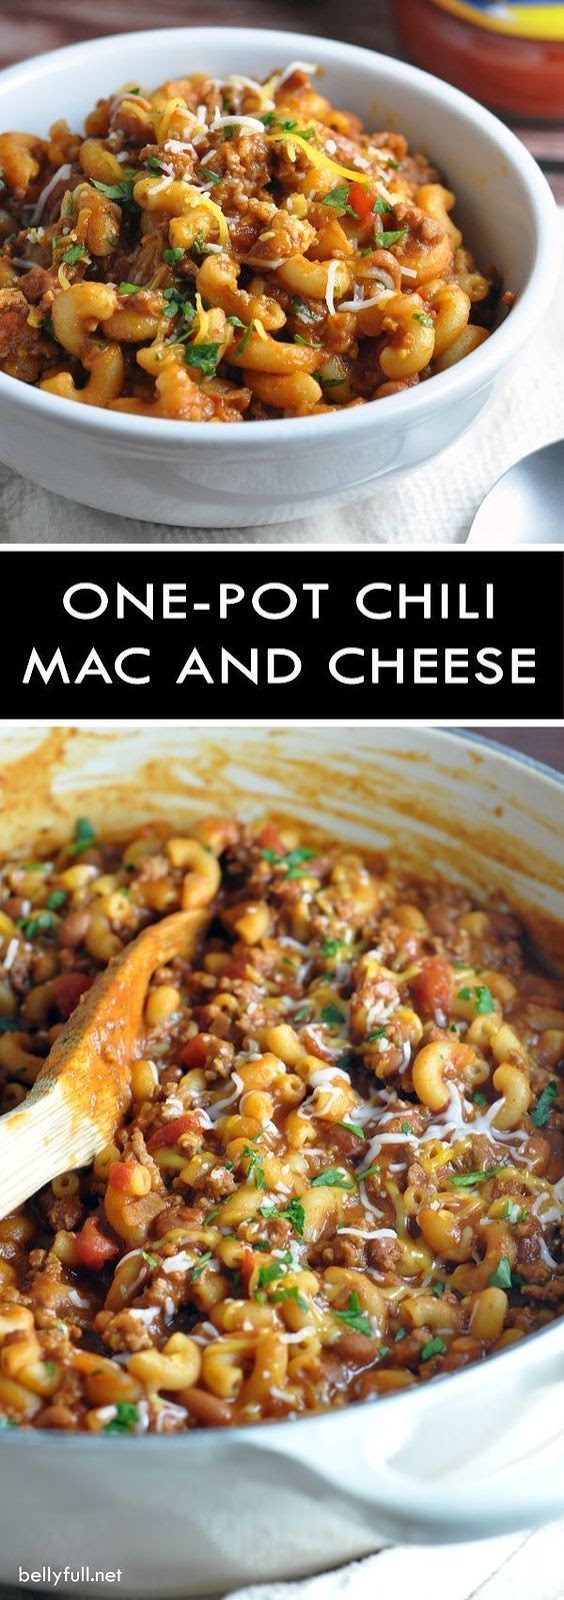 One Pot Chili Mac and Cheese #onepot #chili #mac #cheese